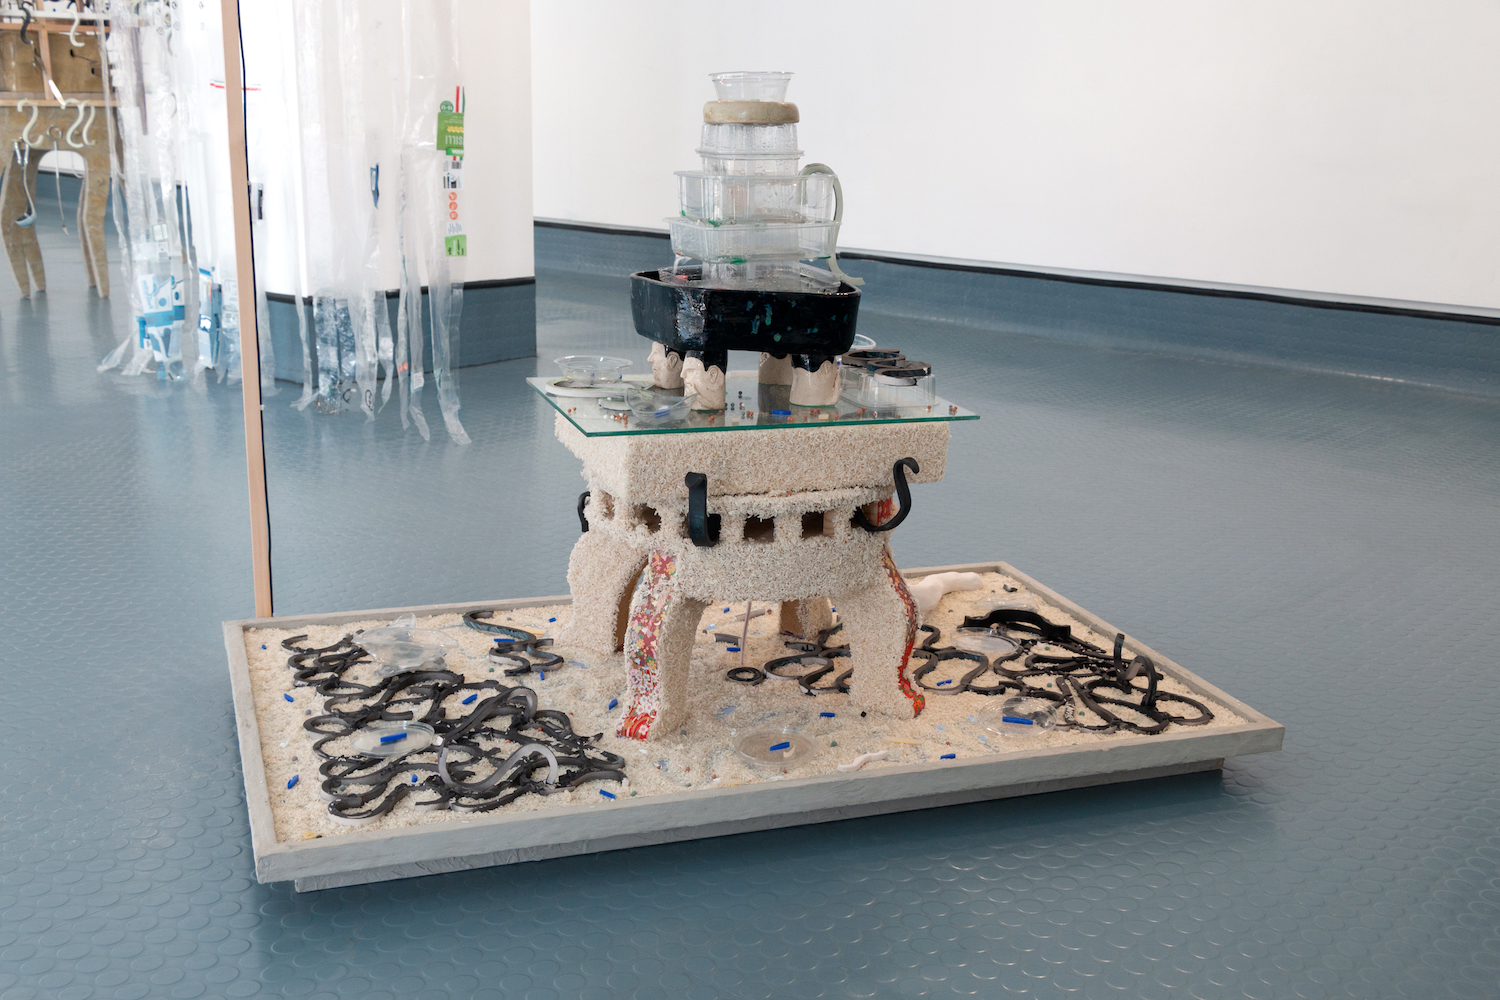 Kara Chin, Snack Fountain, 2019. Glazed ceramic, plastic containers, glass, paper, perspex, timber, tile grout, rice. 110 x 80 x 70 cm.